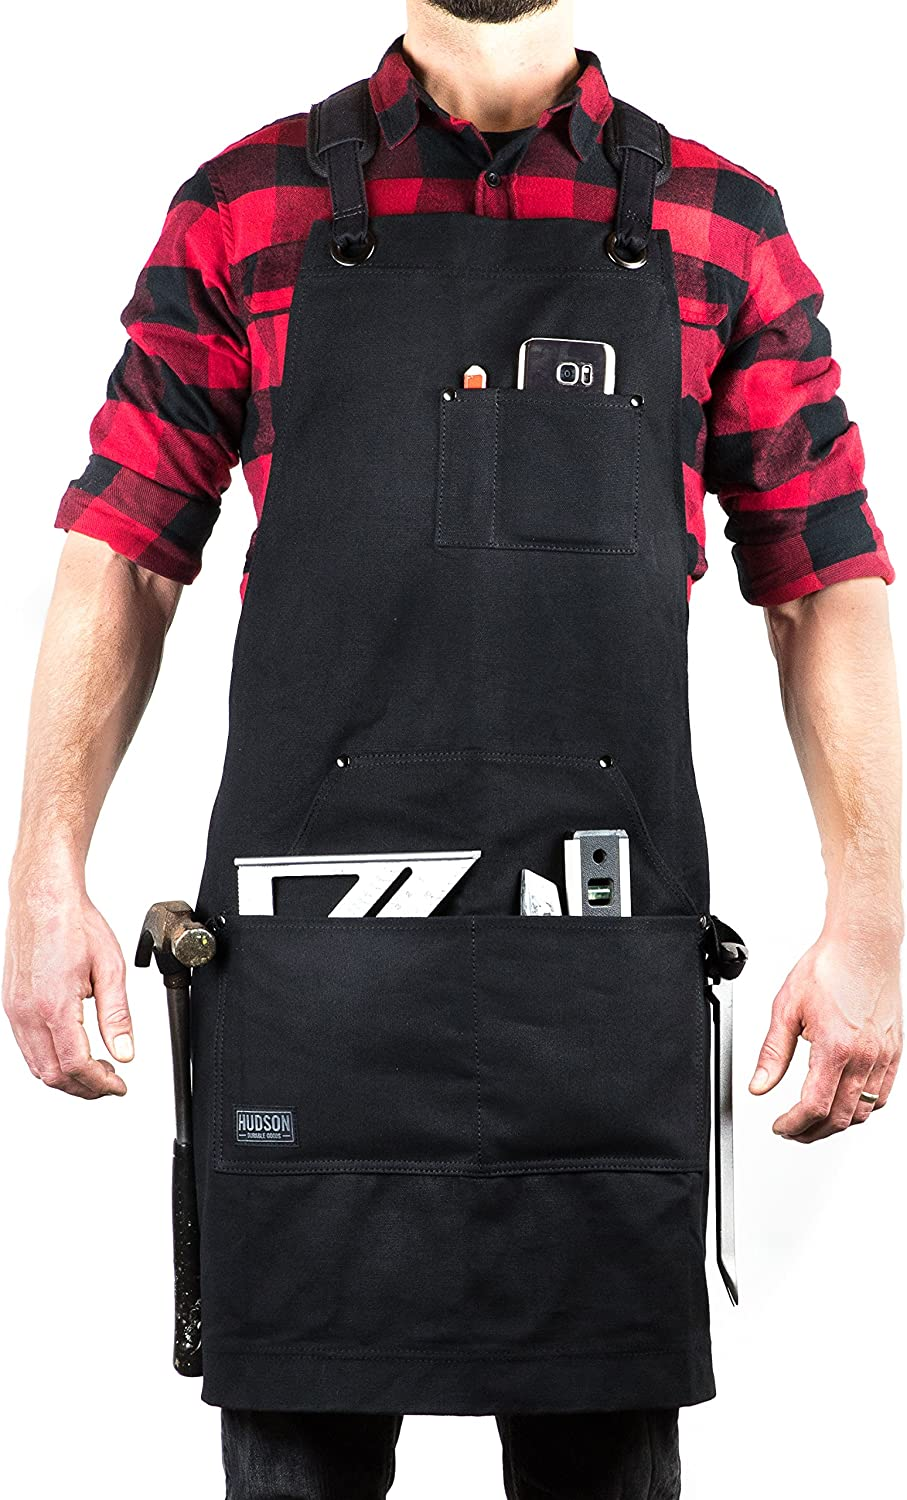 Hudson Durable Goods - Deluxe Edition - Waxed Canvas Tool Apron